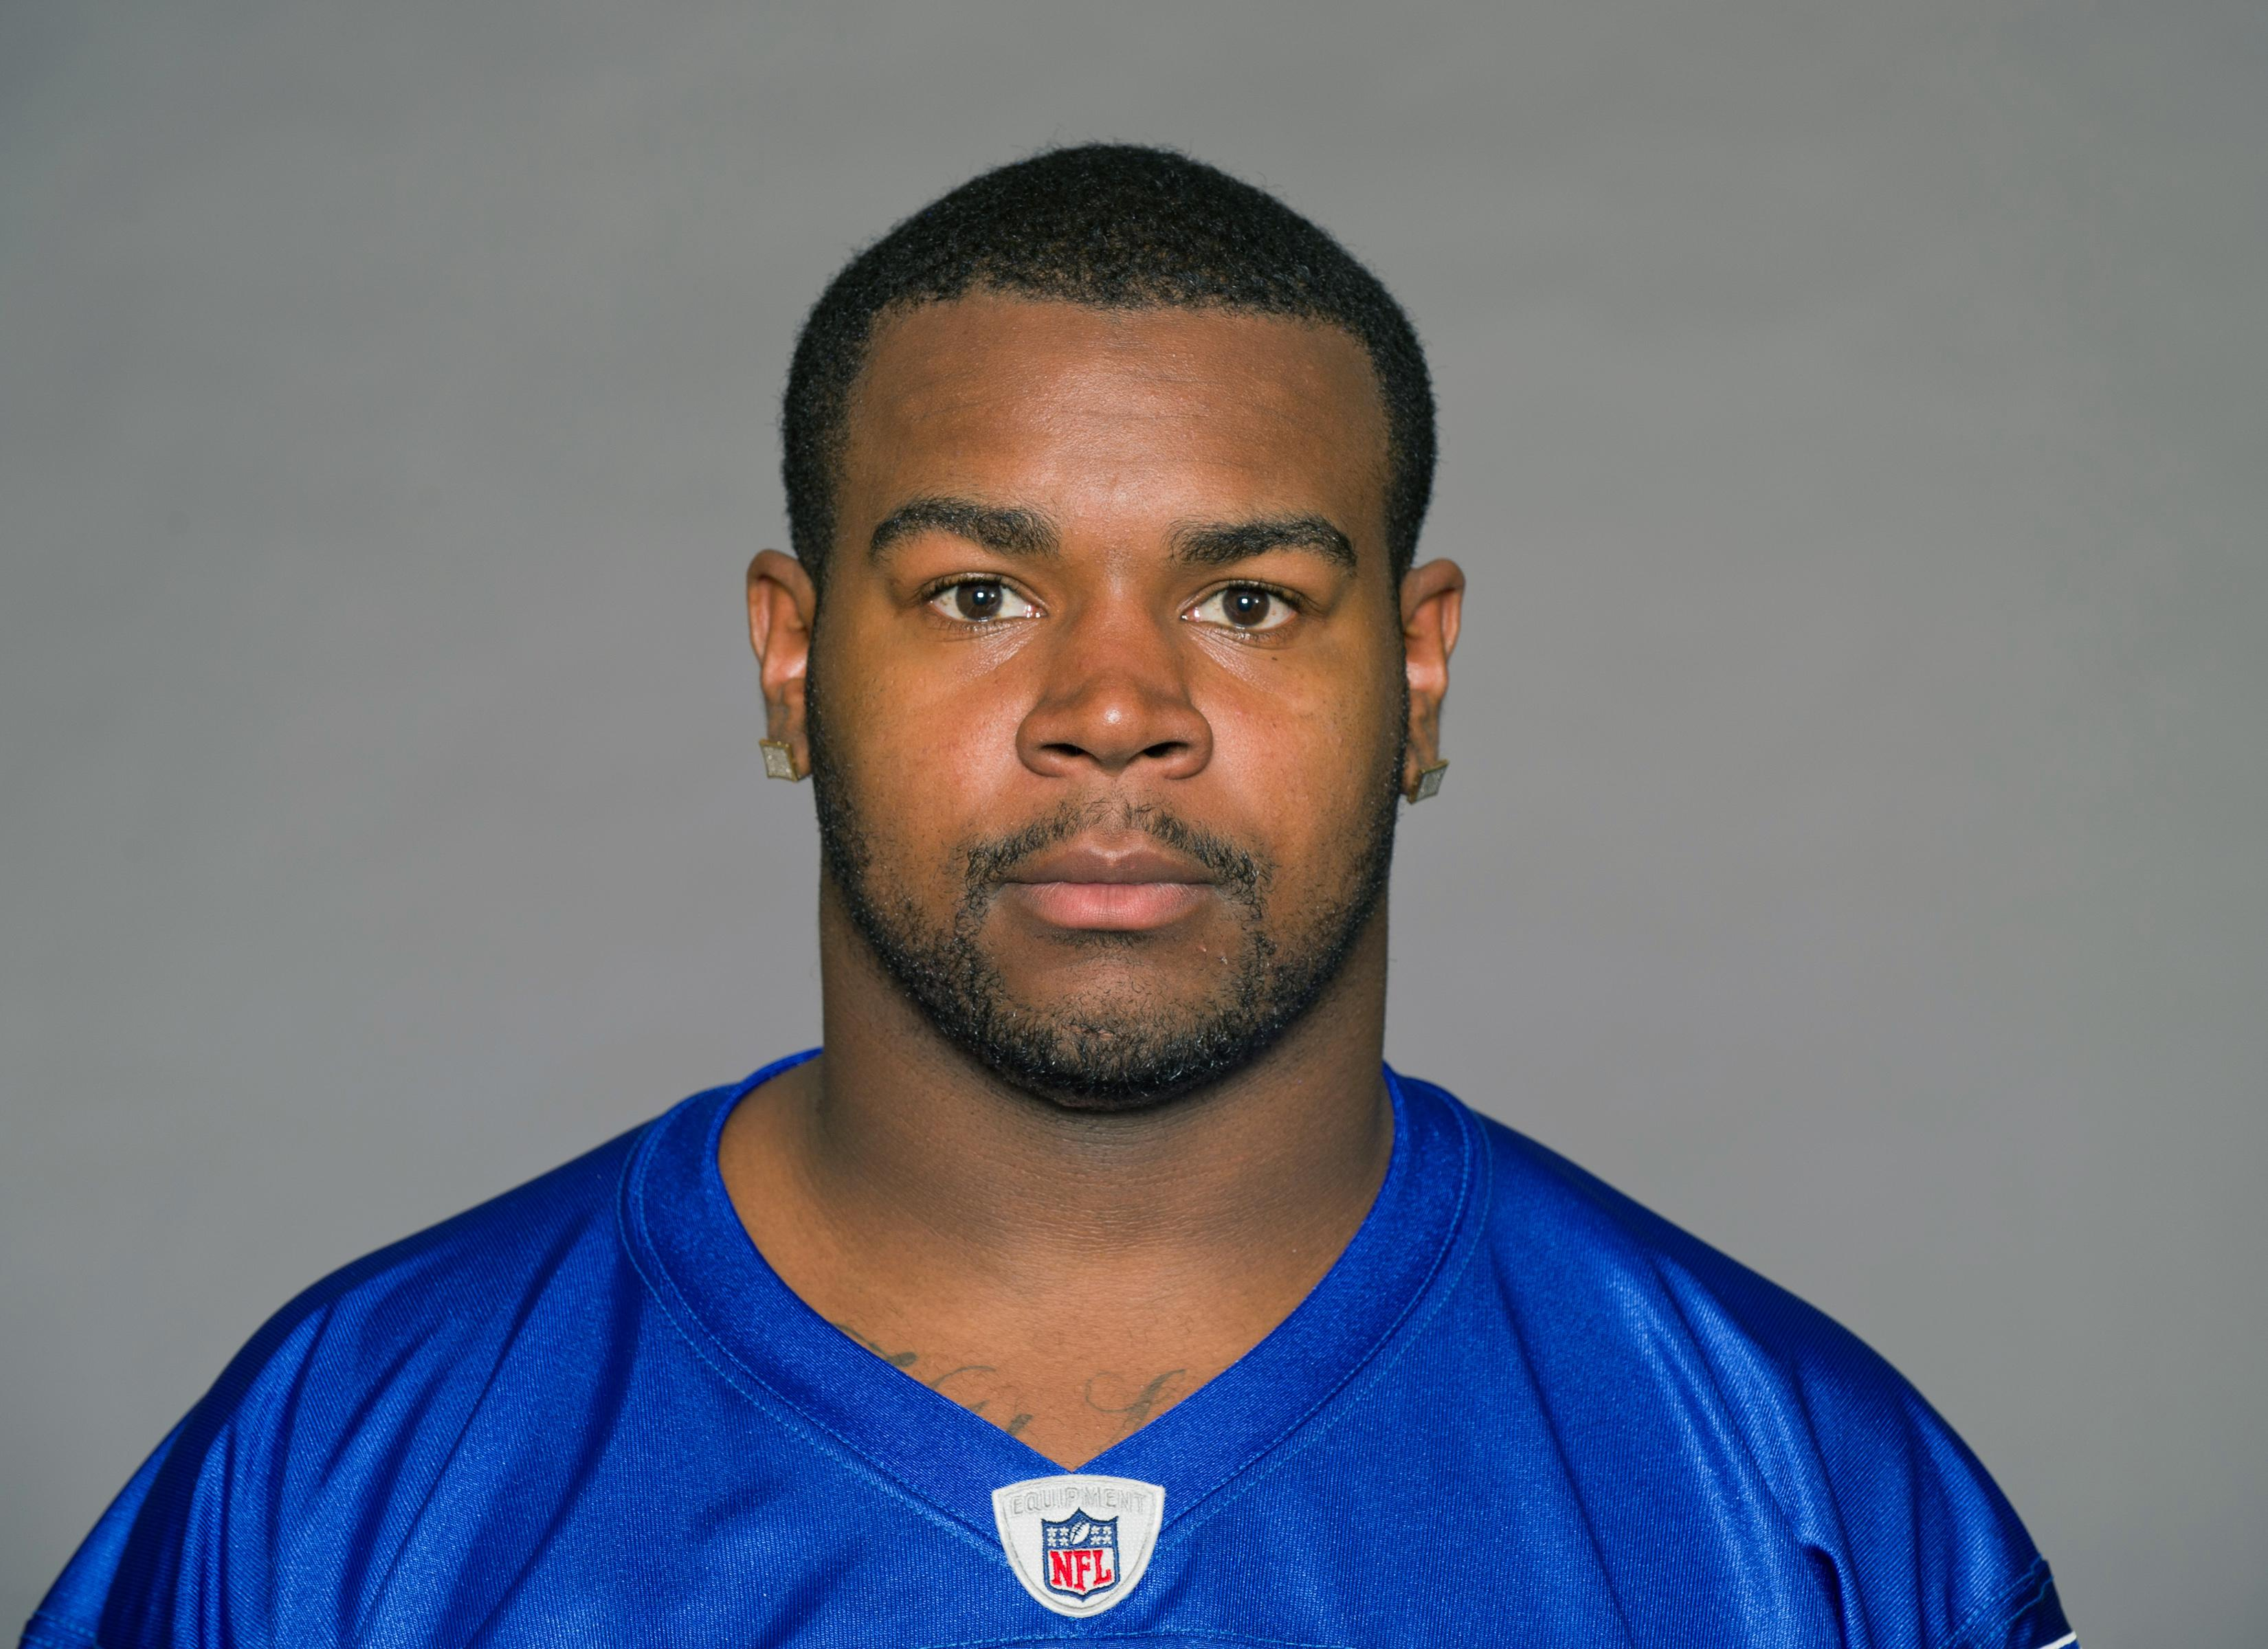 Ex-NFL Linebacker Murdered By Cocaine Dealers ... Officials Say